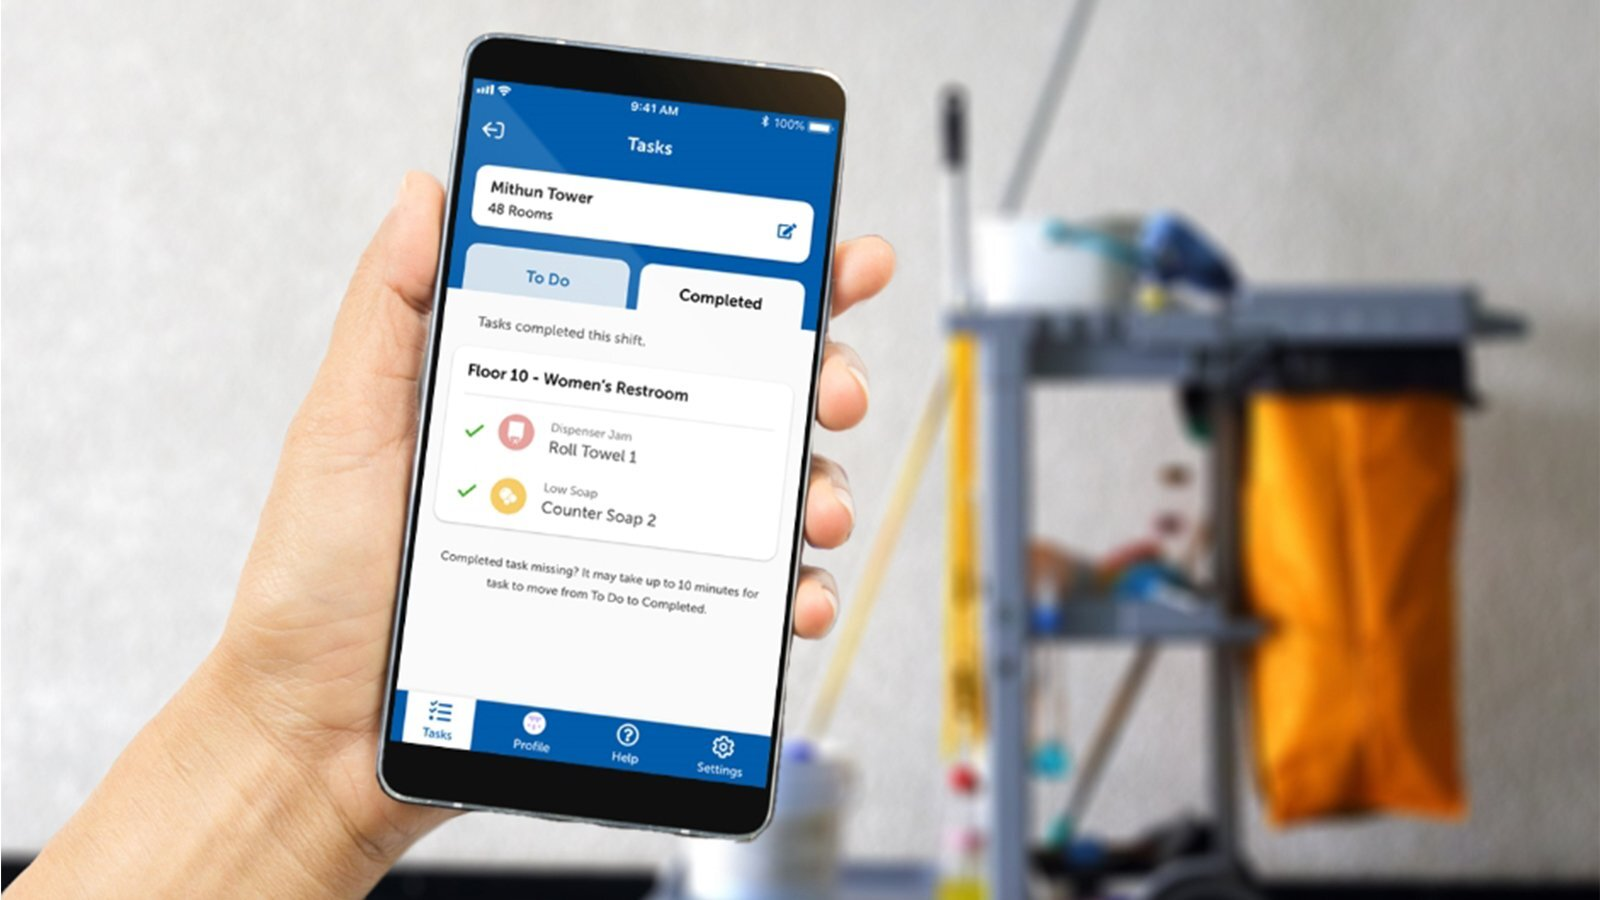 A cell phone displaying the Onvation cleaner app and an image of a facility cleaner.